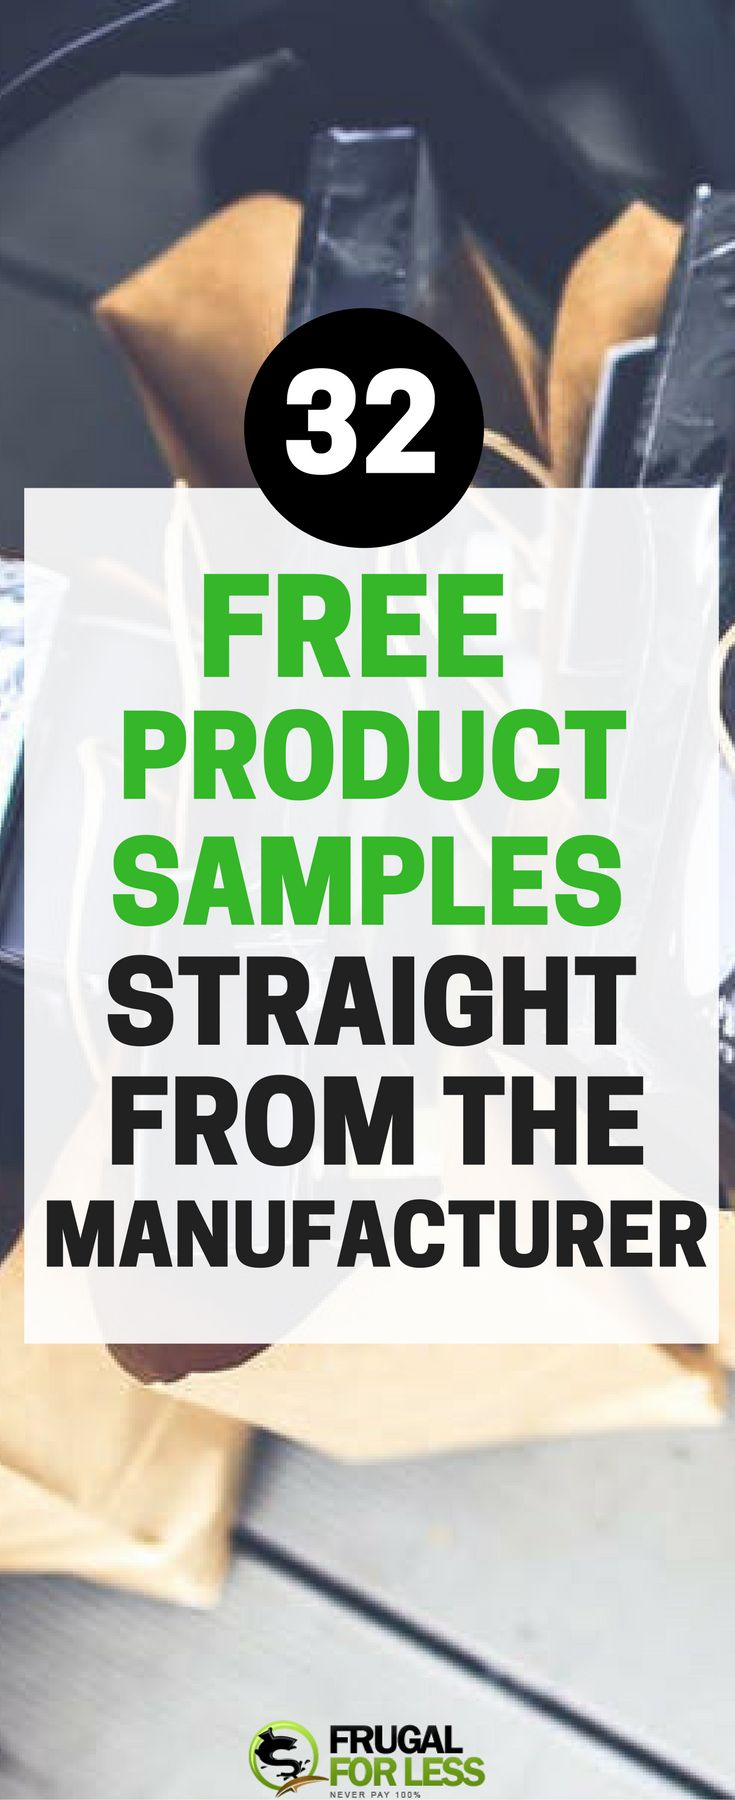 What?!? 32 Free product samples straight from the manufacturer! #freesamples #freebies #coupons #frugal #frugalliving #frugallivingtips #frugality #produtsamples #freeproductsamples #freestuff